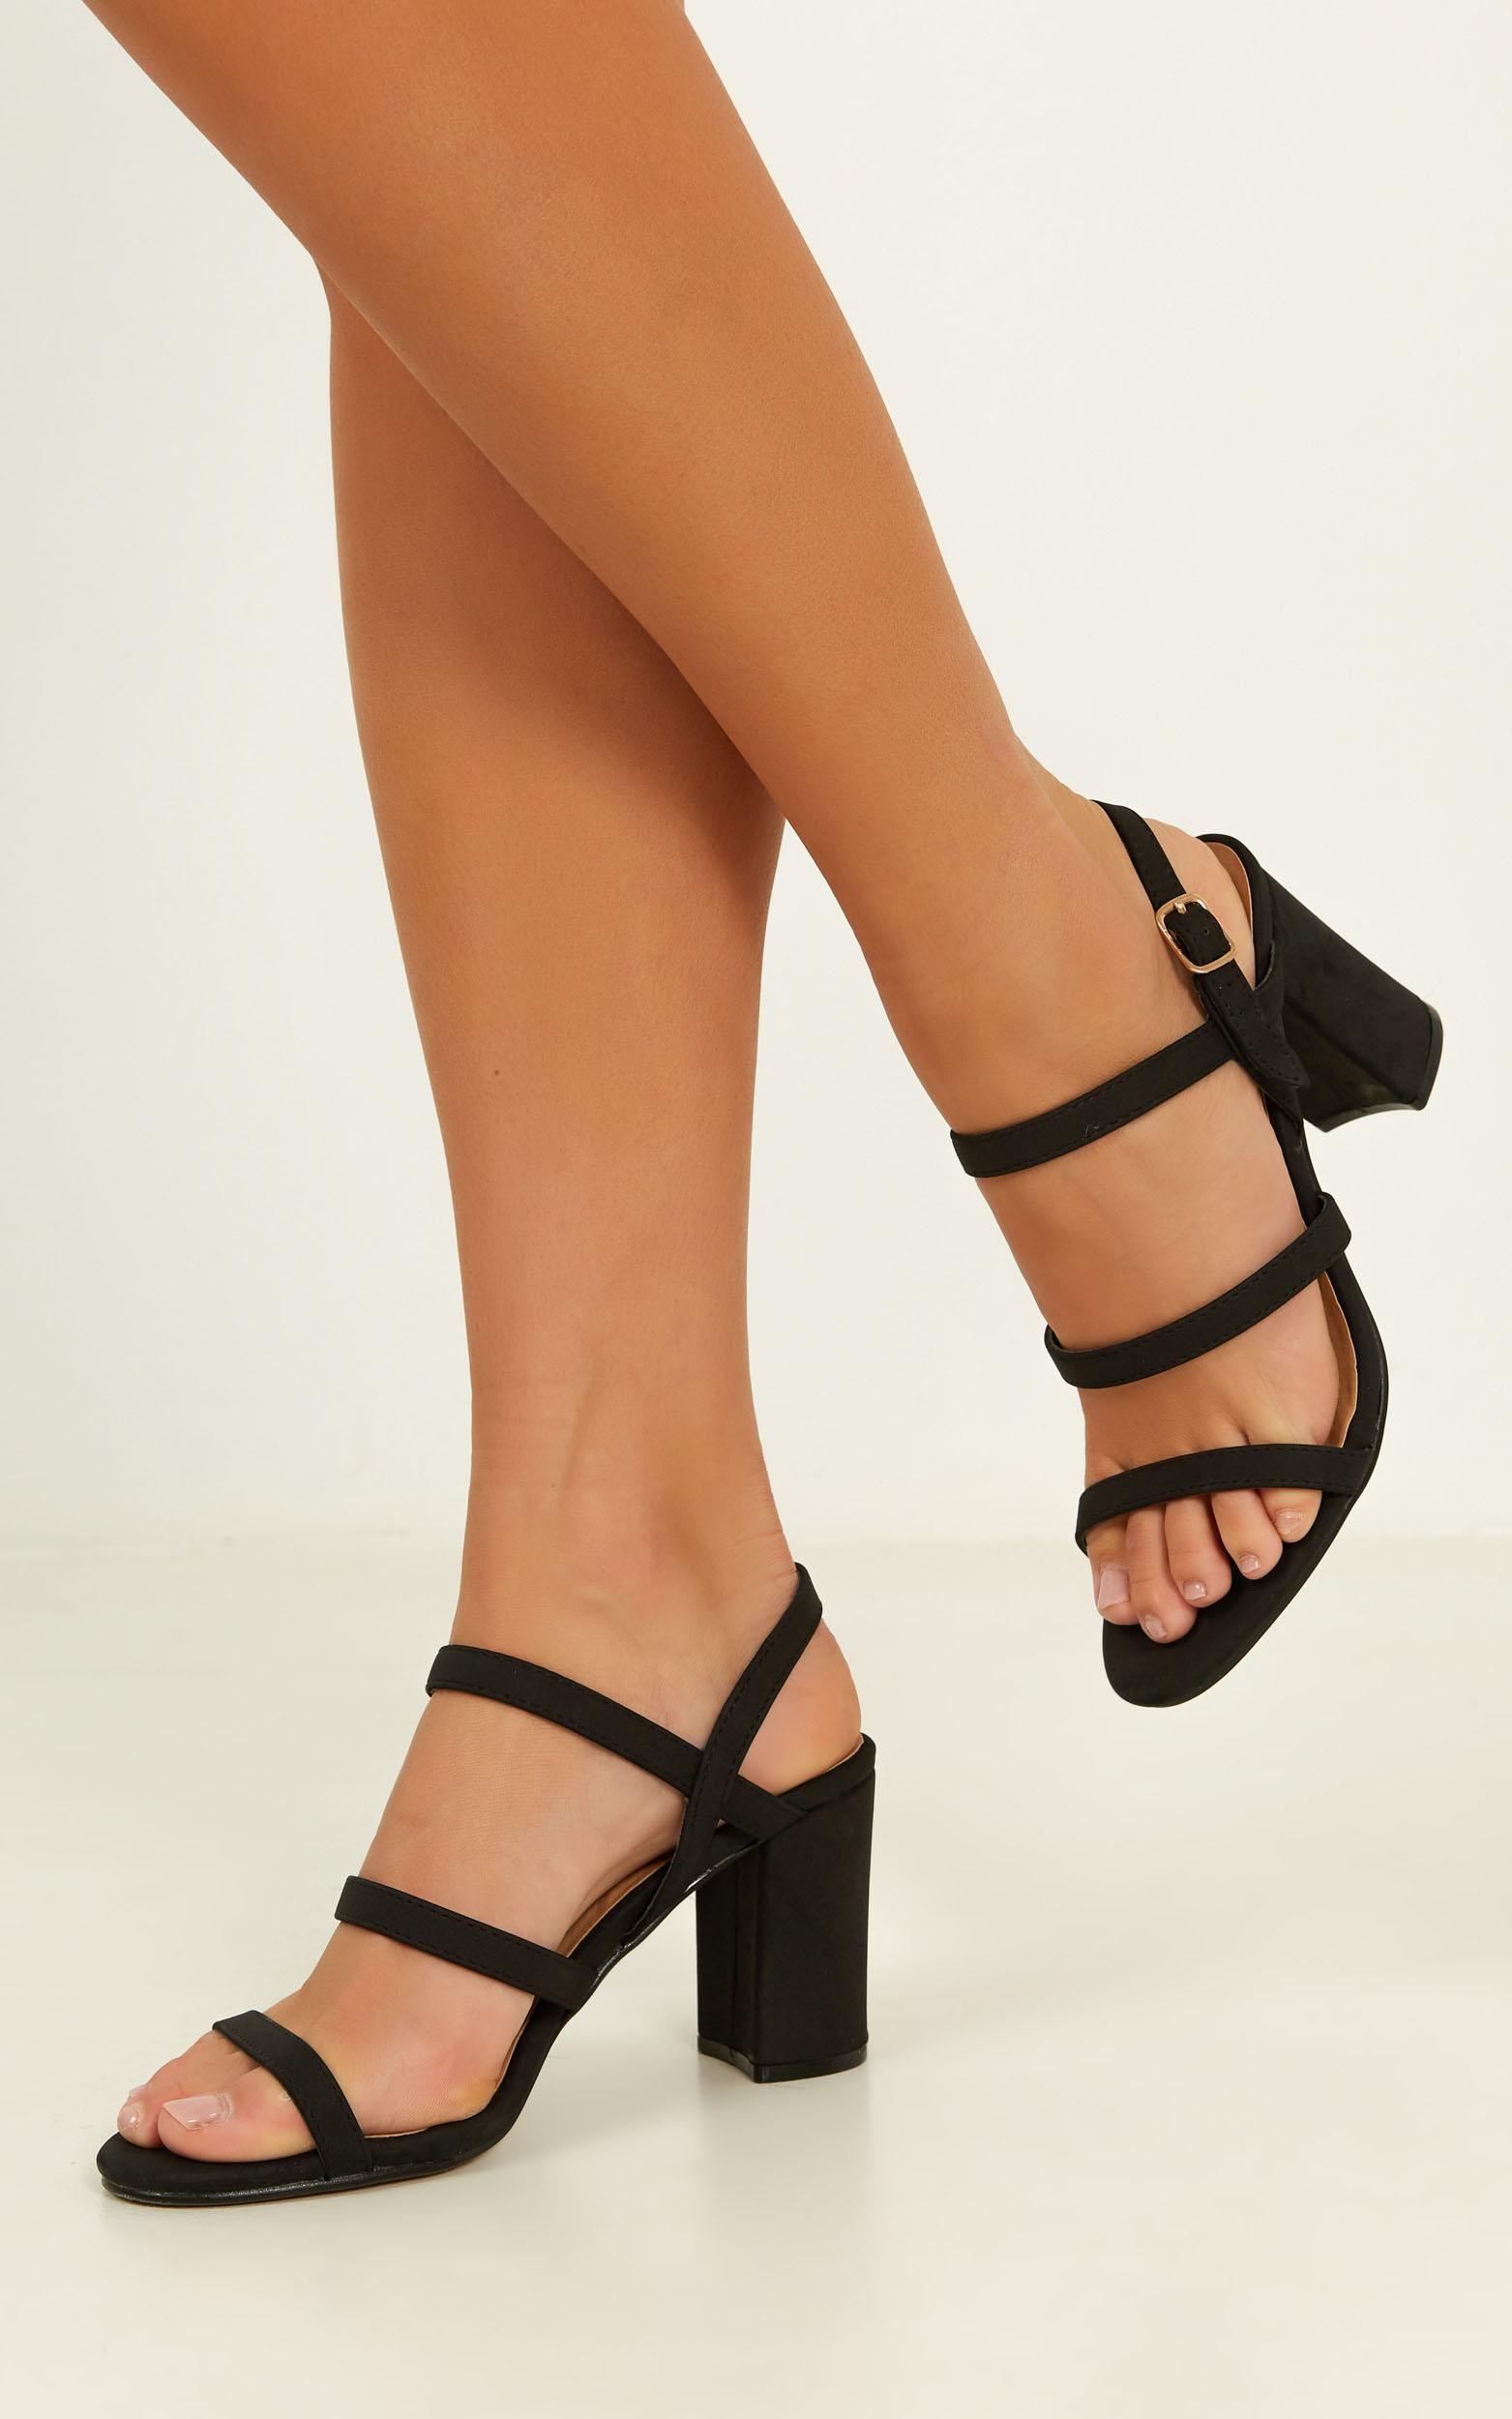 Billini - Raiya heels in black nubuck - 10, Black, hi-res image number null